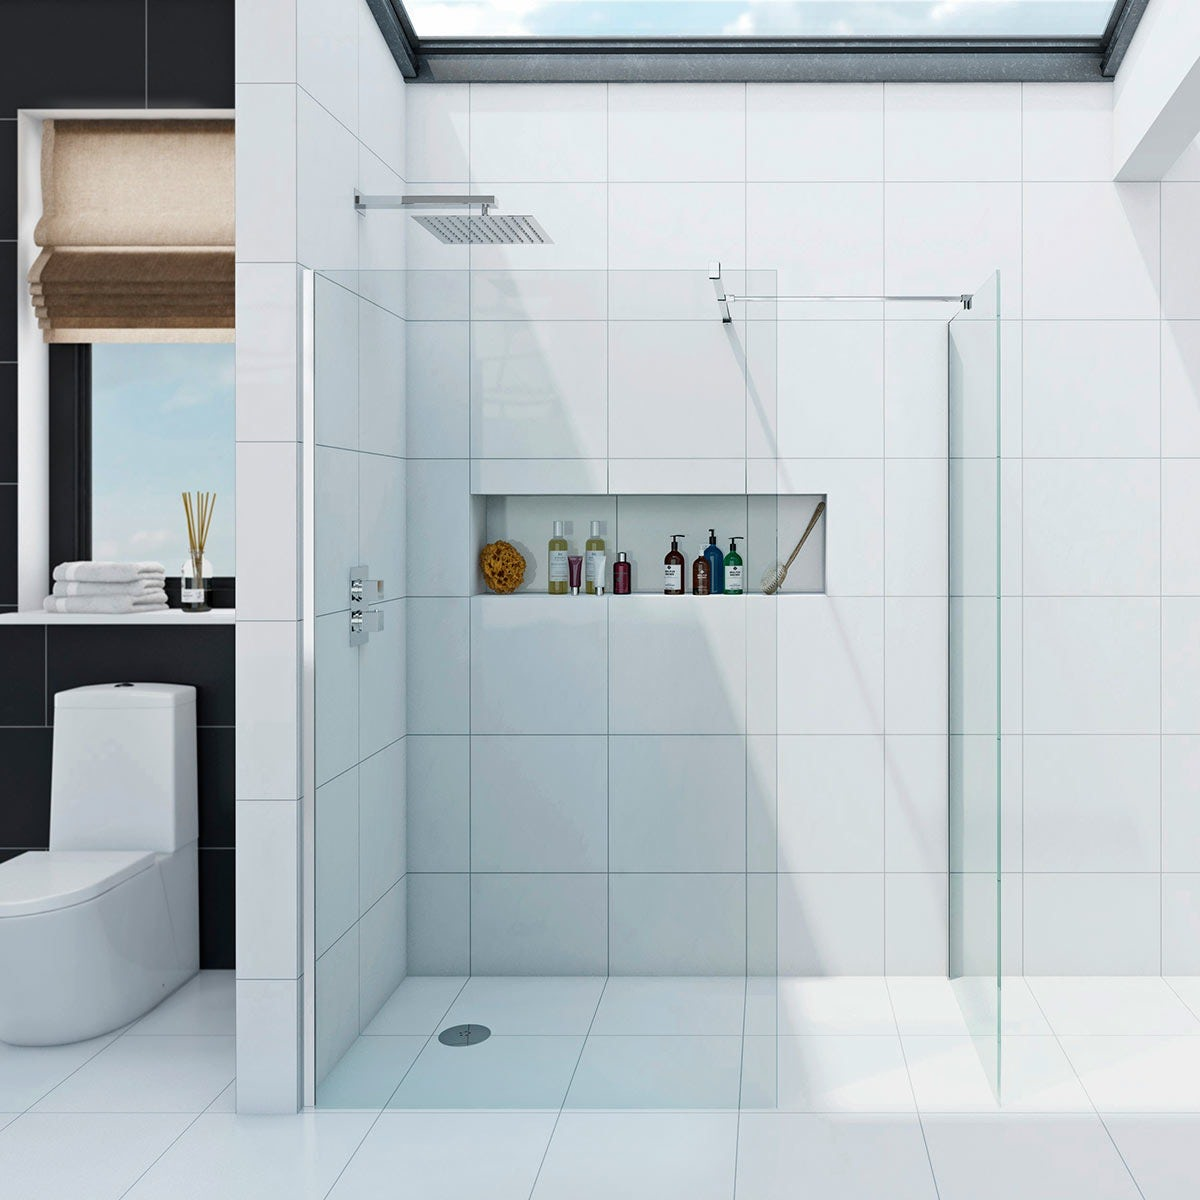 Shower Enclosure Buying Guide VictoriaPlumcom - Alternative to tiles in shower cubicle